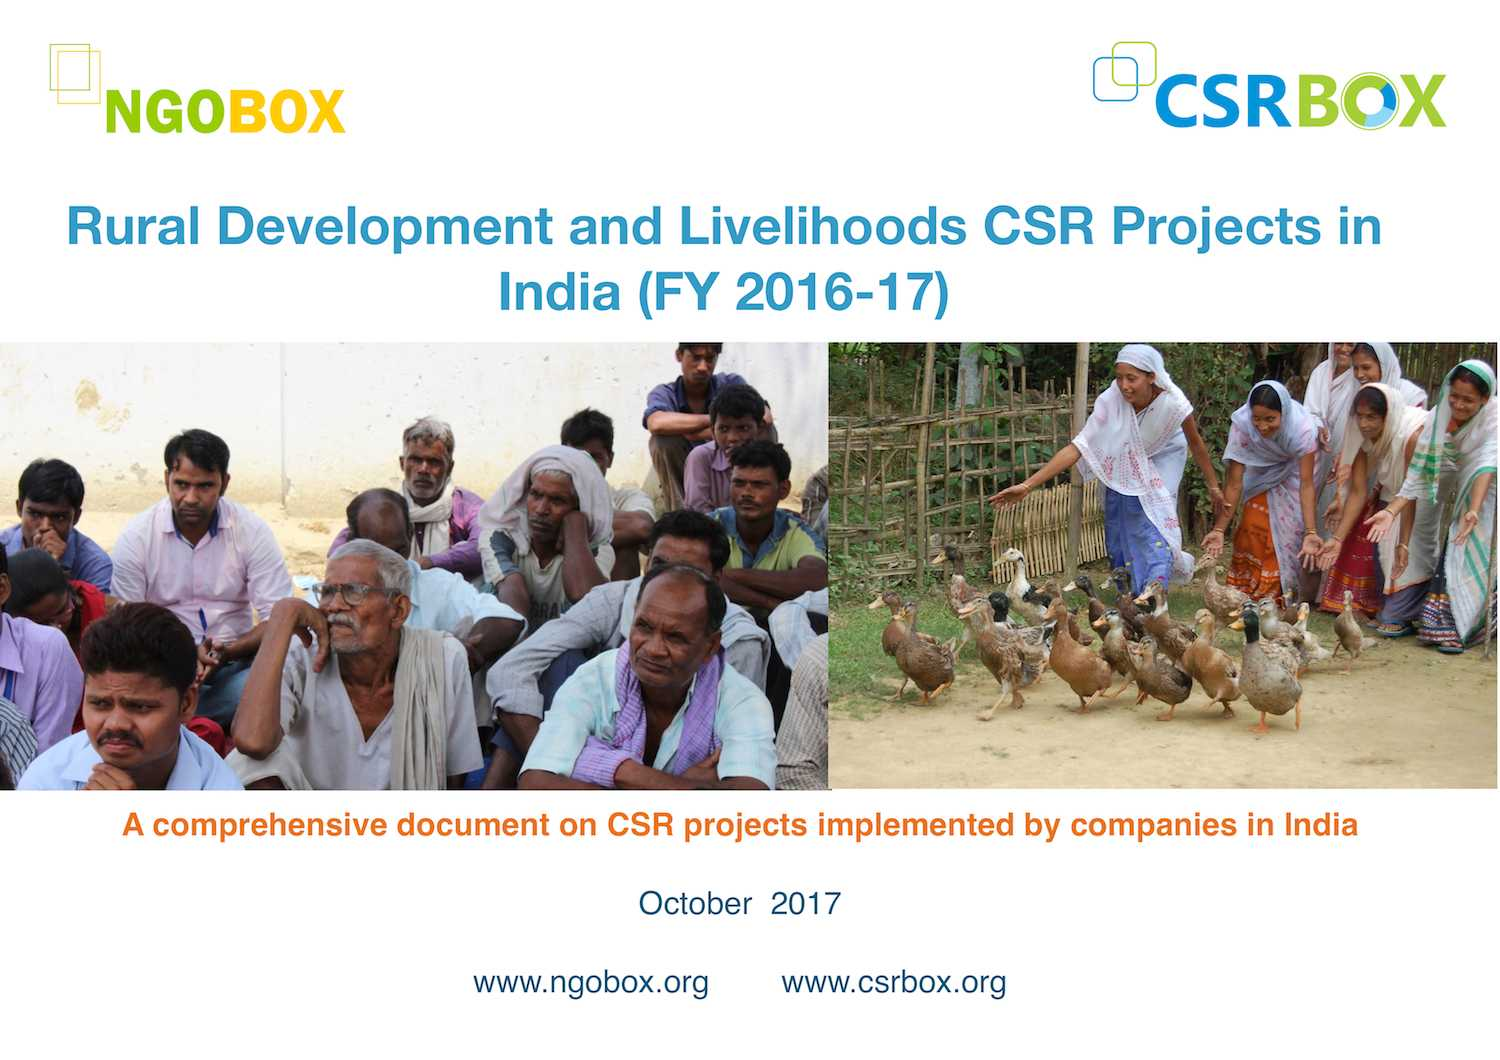 Rural Development and Livelihoods CSR Projects in India (FY 2016-17)